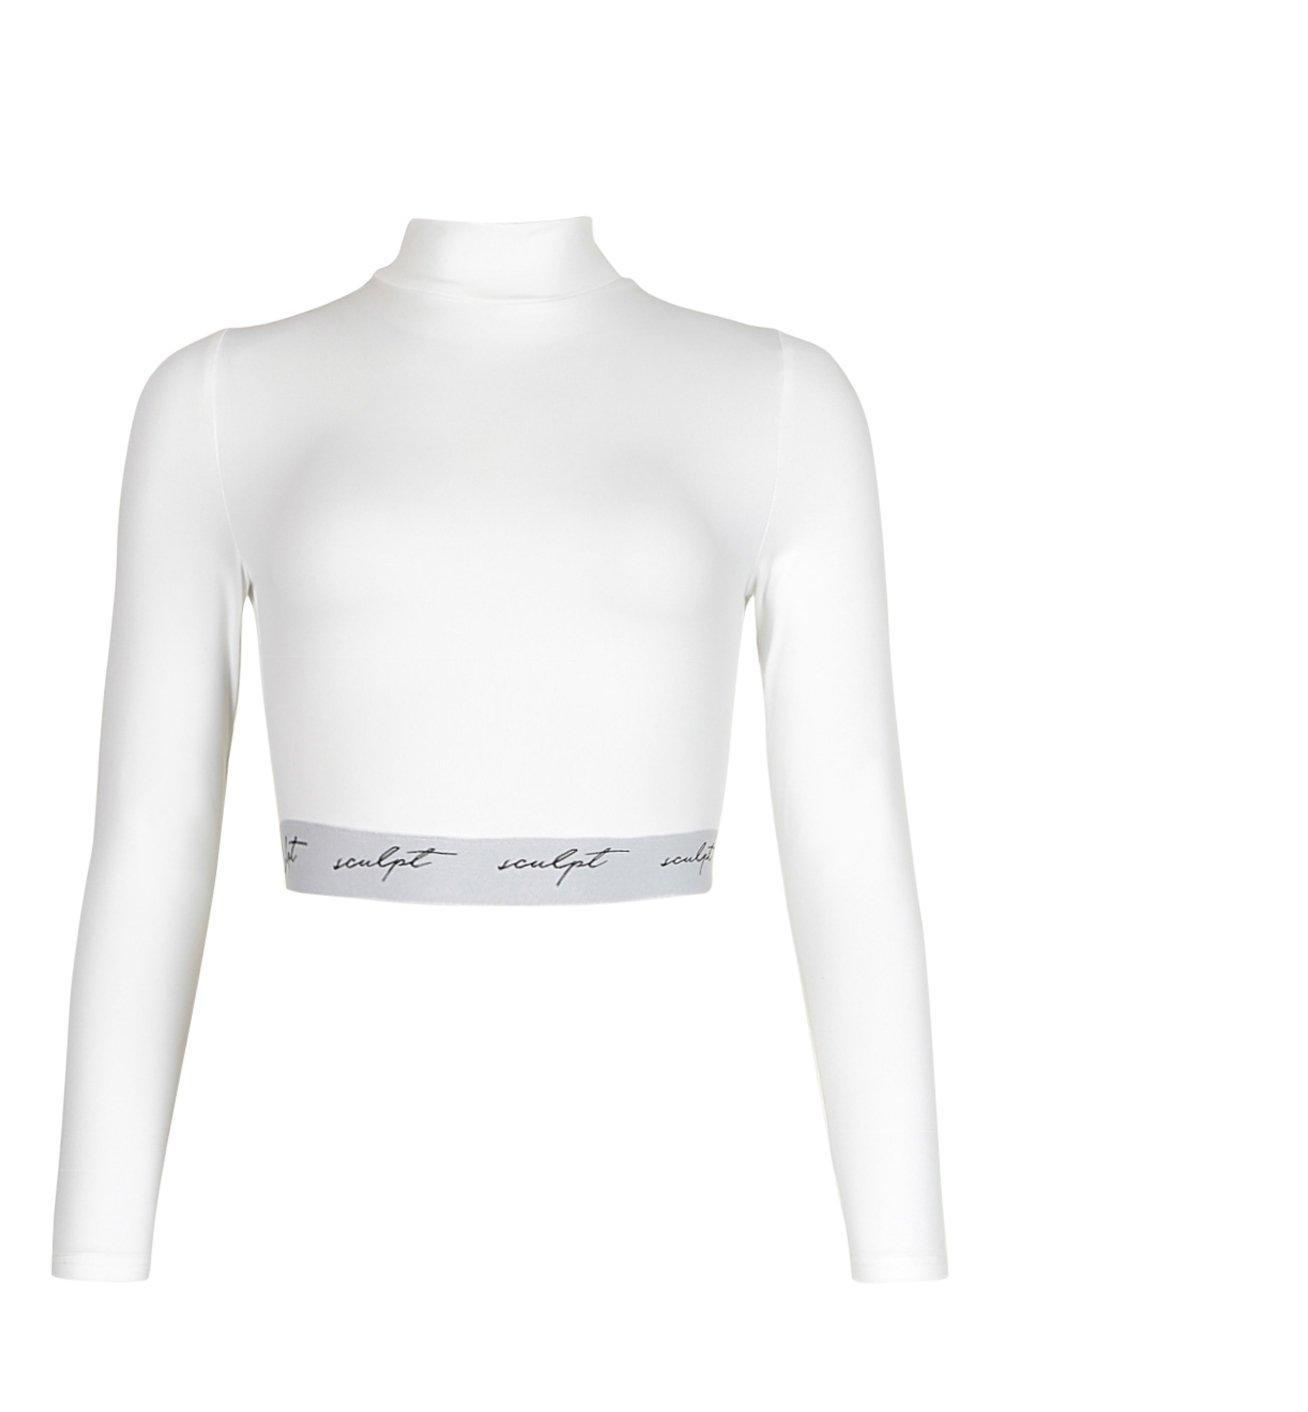 Sculpt Elastic Tape Cross Back White Crop Top